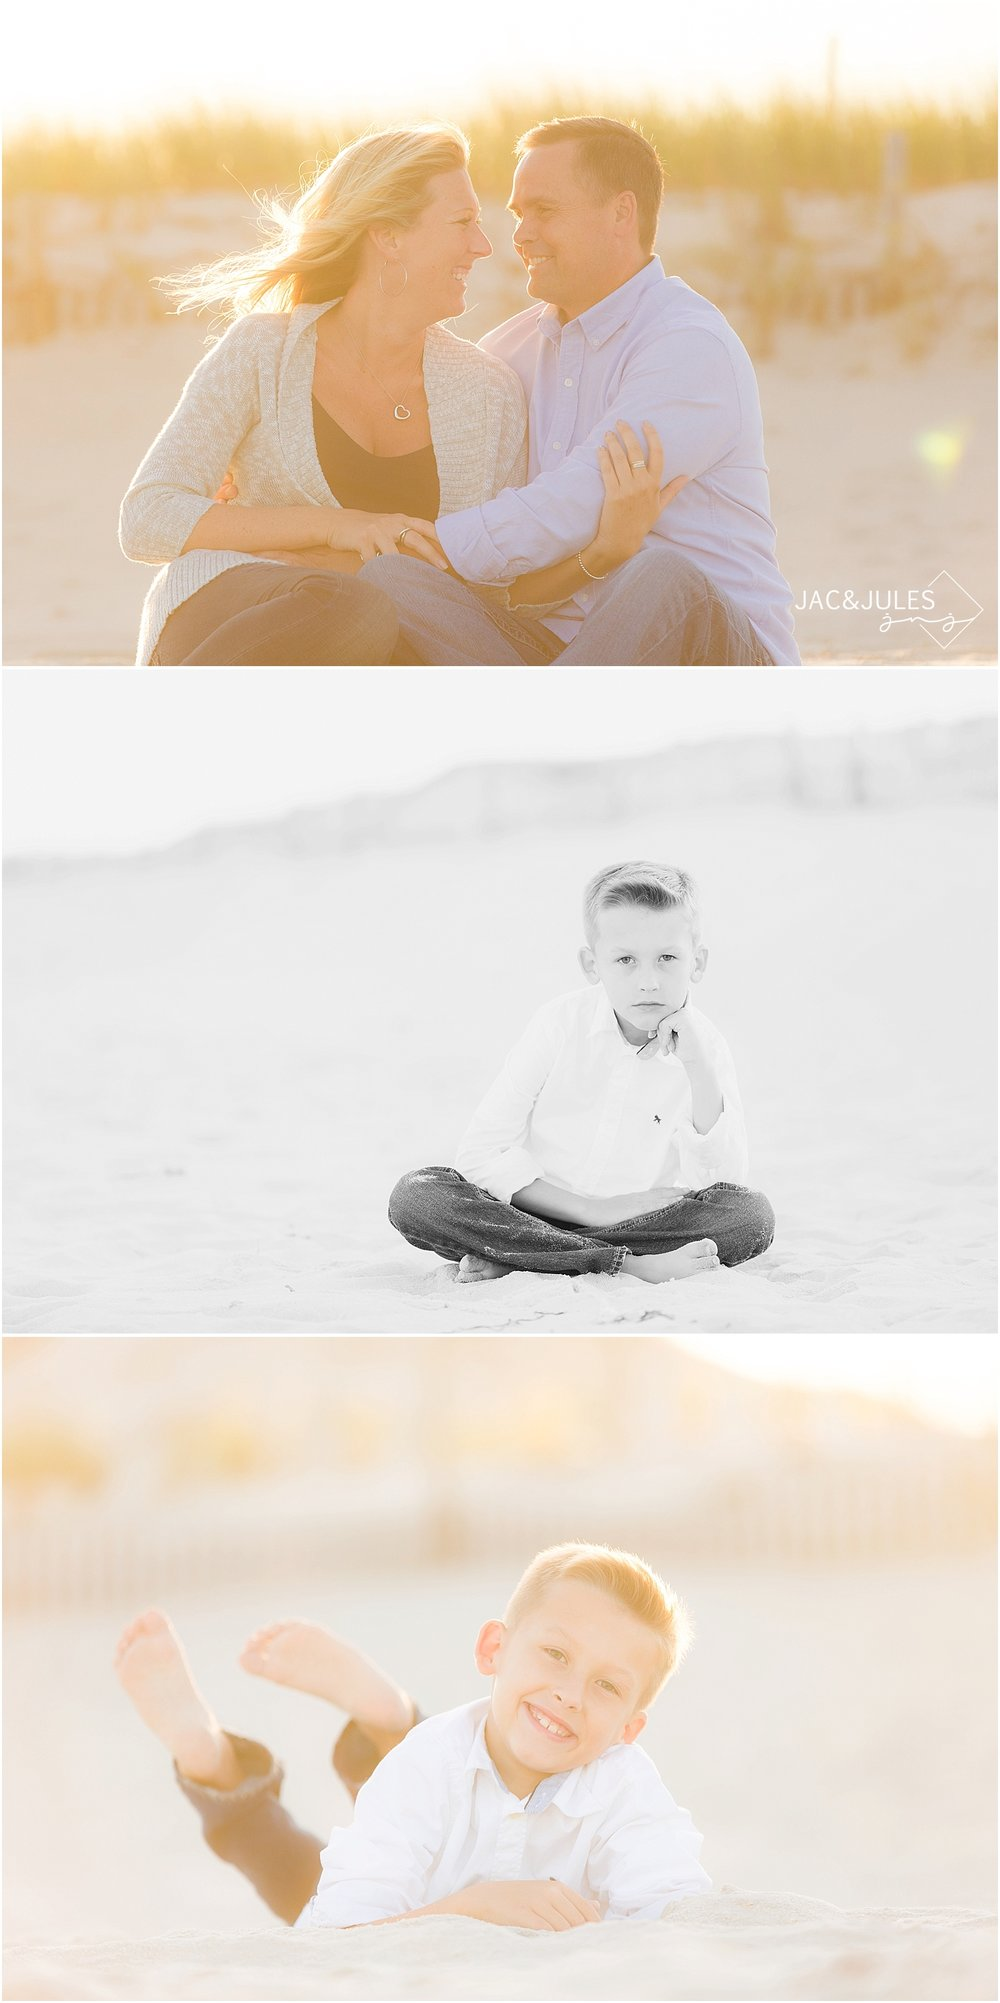 jacnjules takes natural light family beach photos in seaside nj